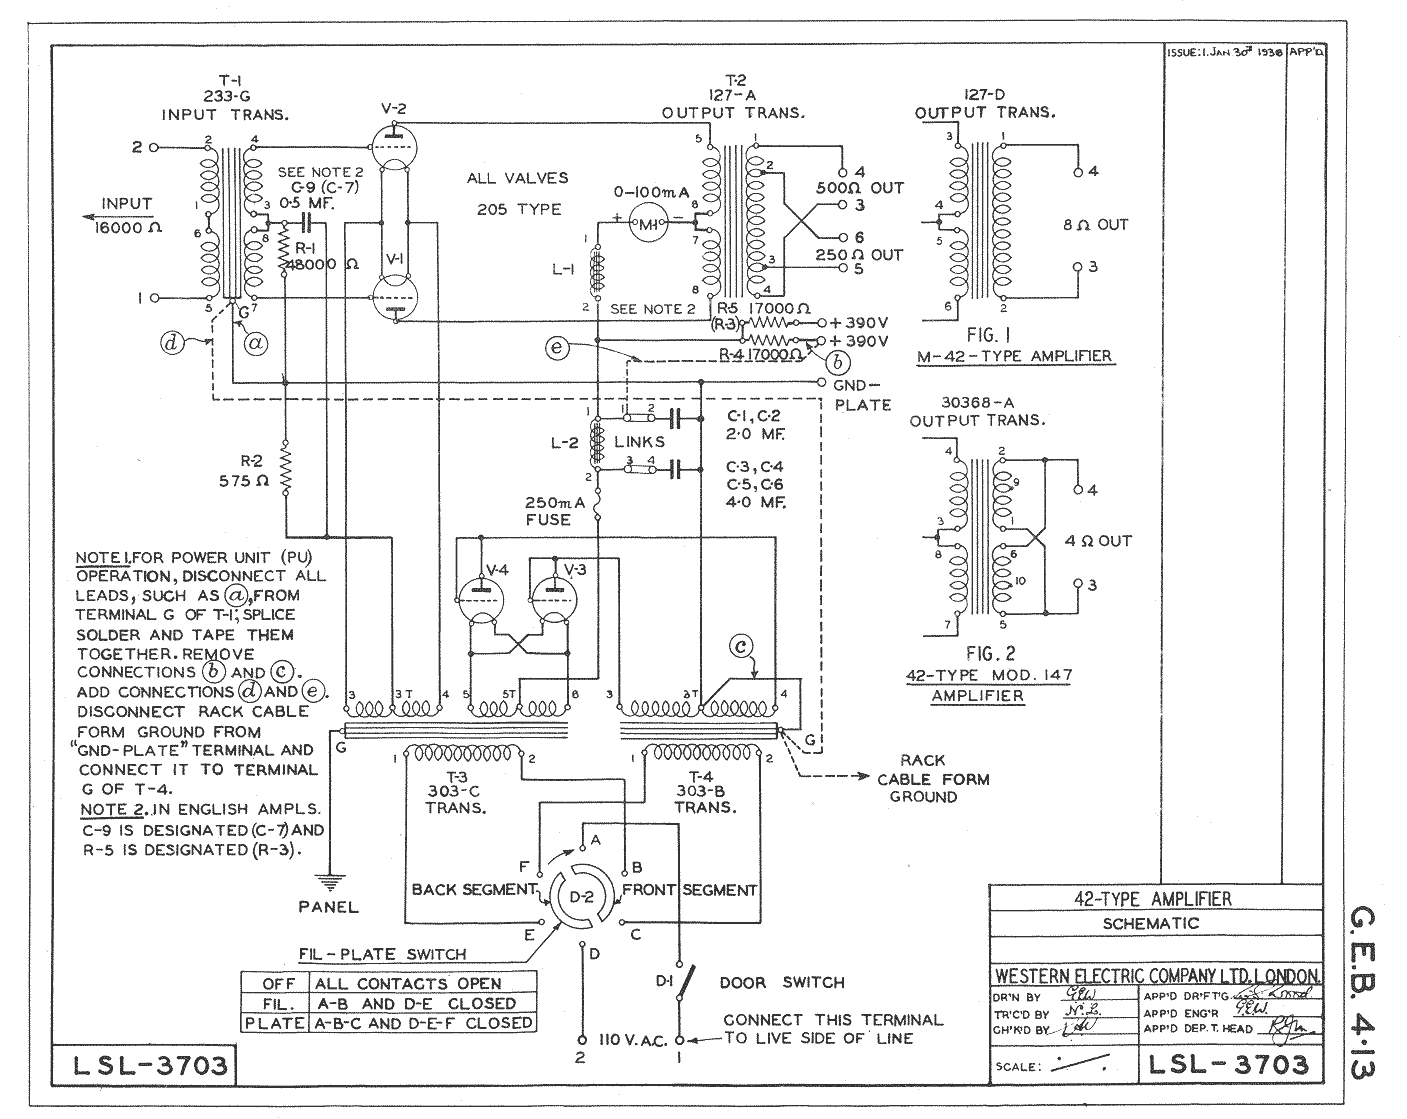 100 Amplifiers Part 1 1916 45 Lilienthal Engineering Wiring Diagram Home Theater Amplifier 5 Western Electric 42 Original Schematic